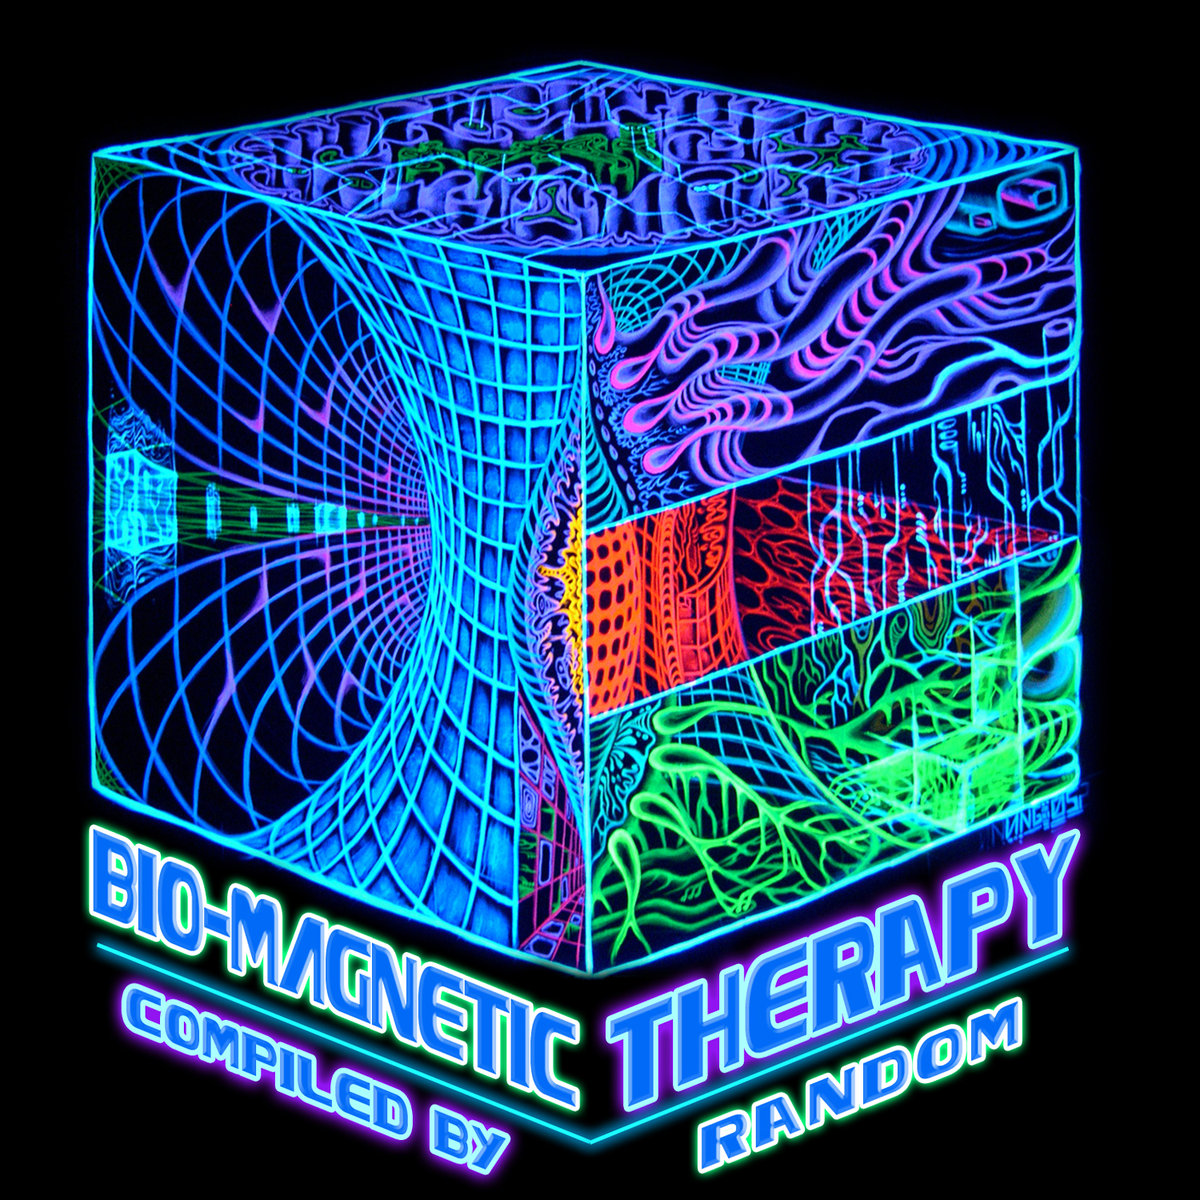 Virtual Light - Grim Leaper @ 'Various Artists - Bio-Magnetic Therapy (Compiled by Random)' album (electronic, goa)